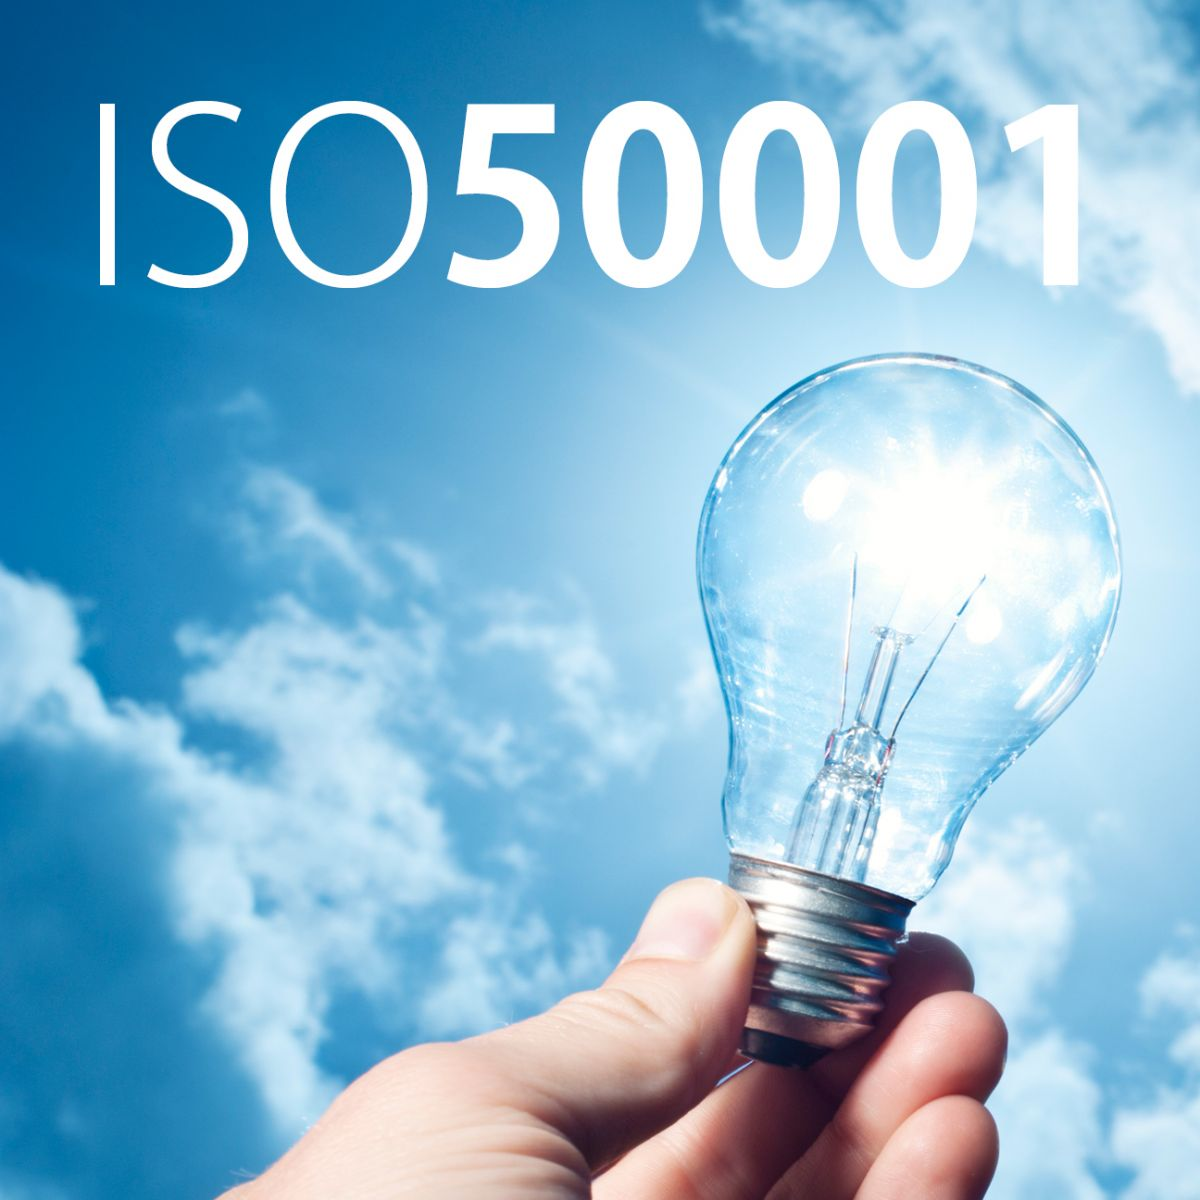 ISO15001 energy management standard